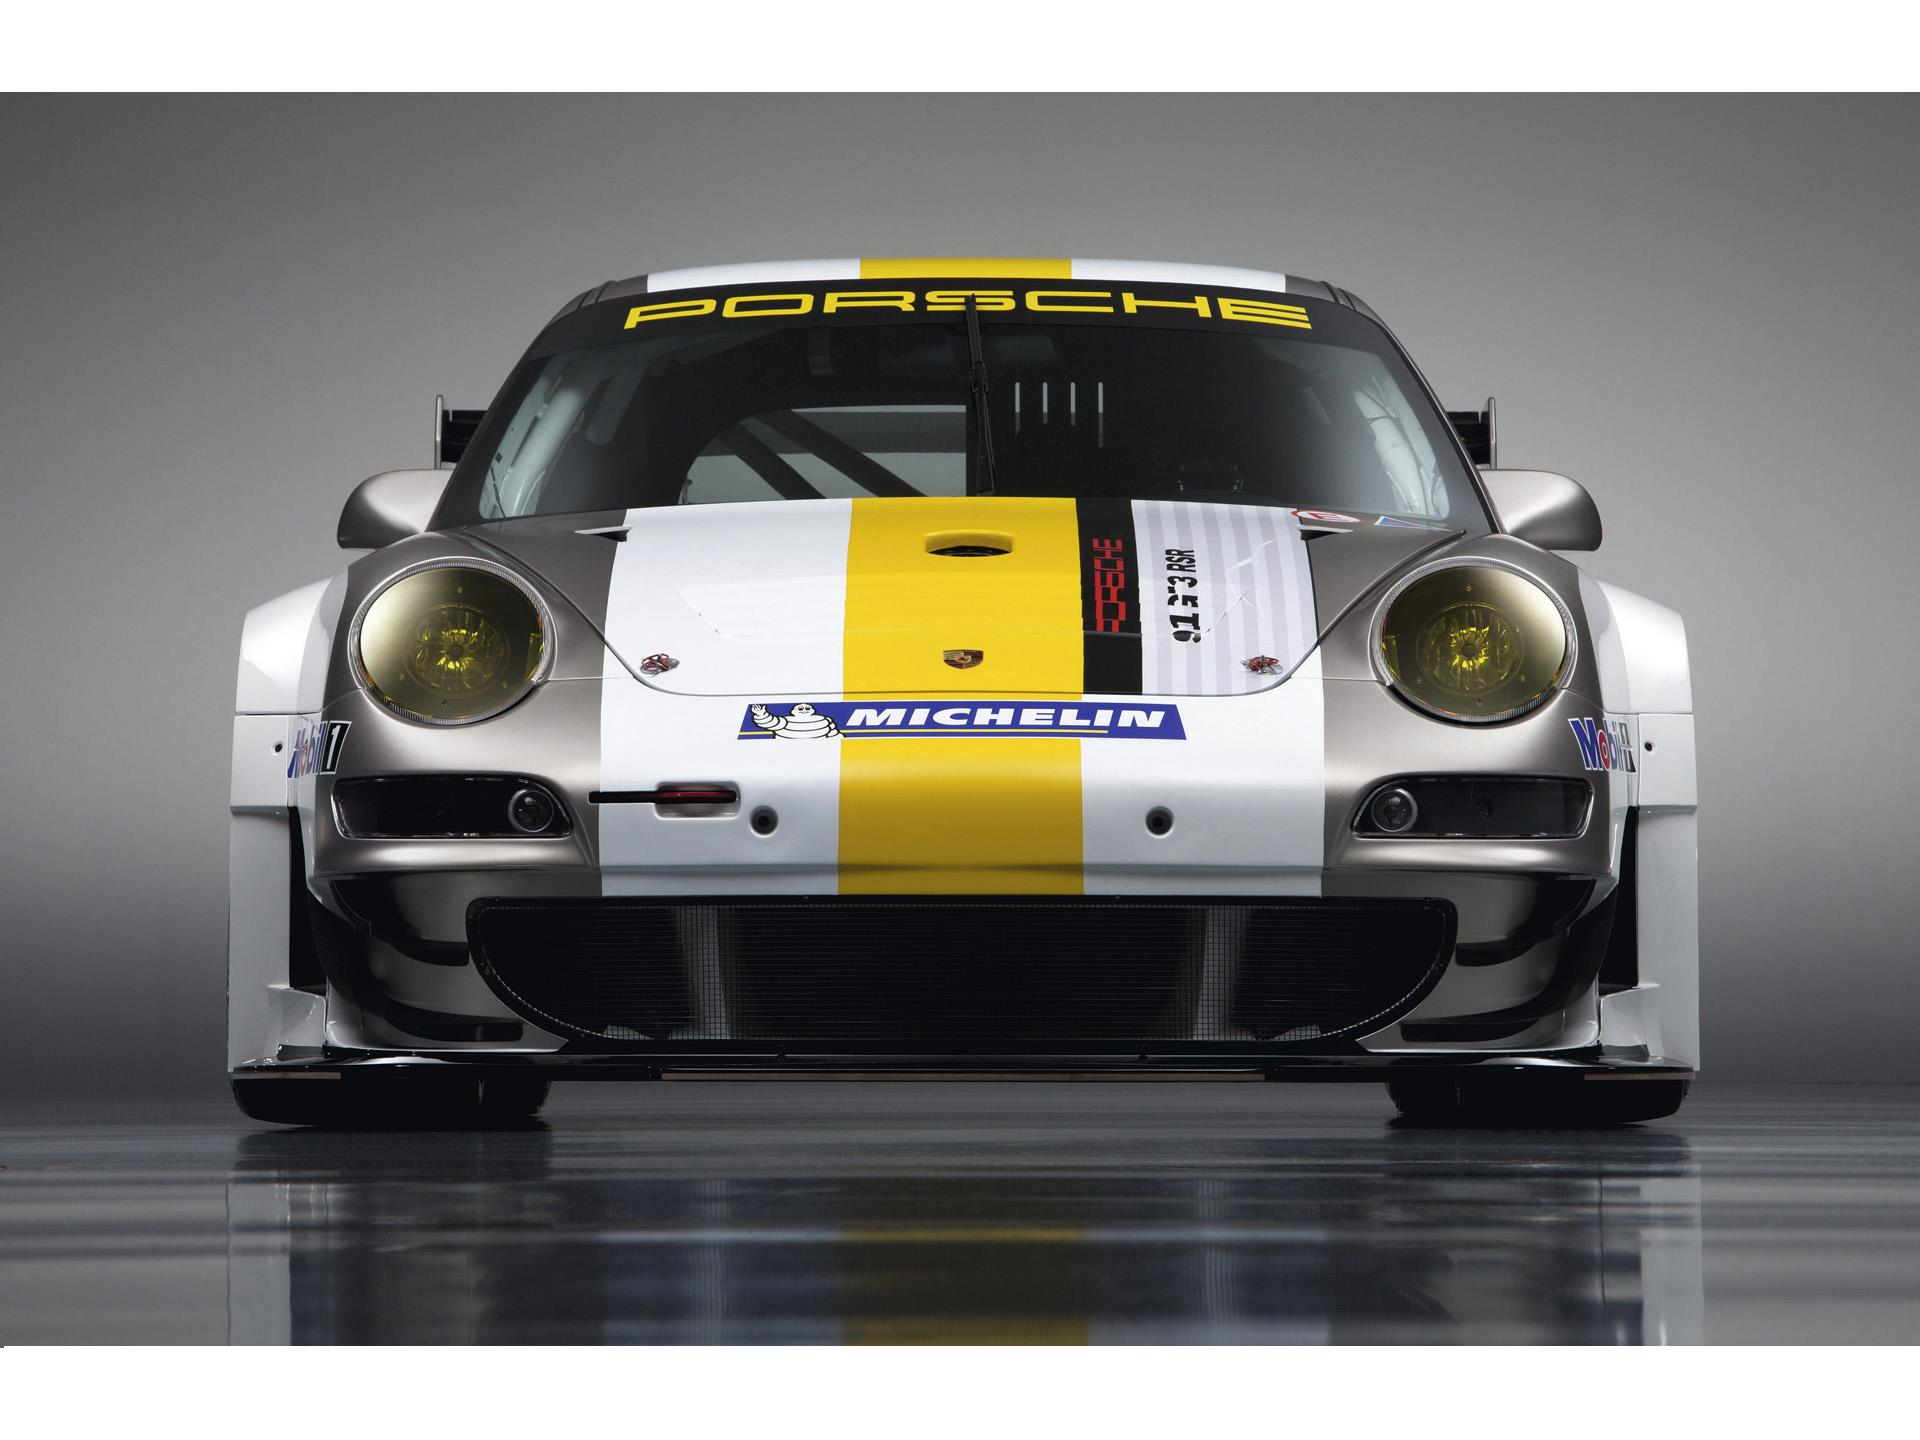 2011 Porsche 911 Gt3 Rsr News And Information Research And Pricing